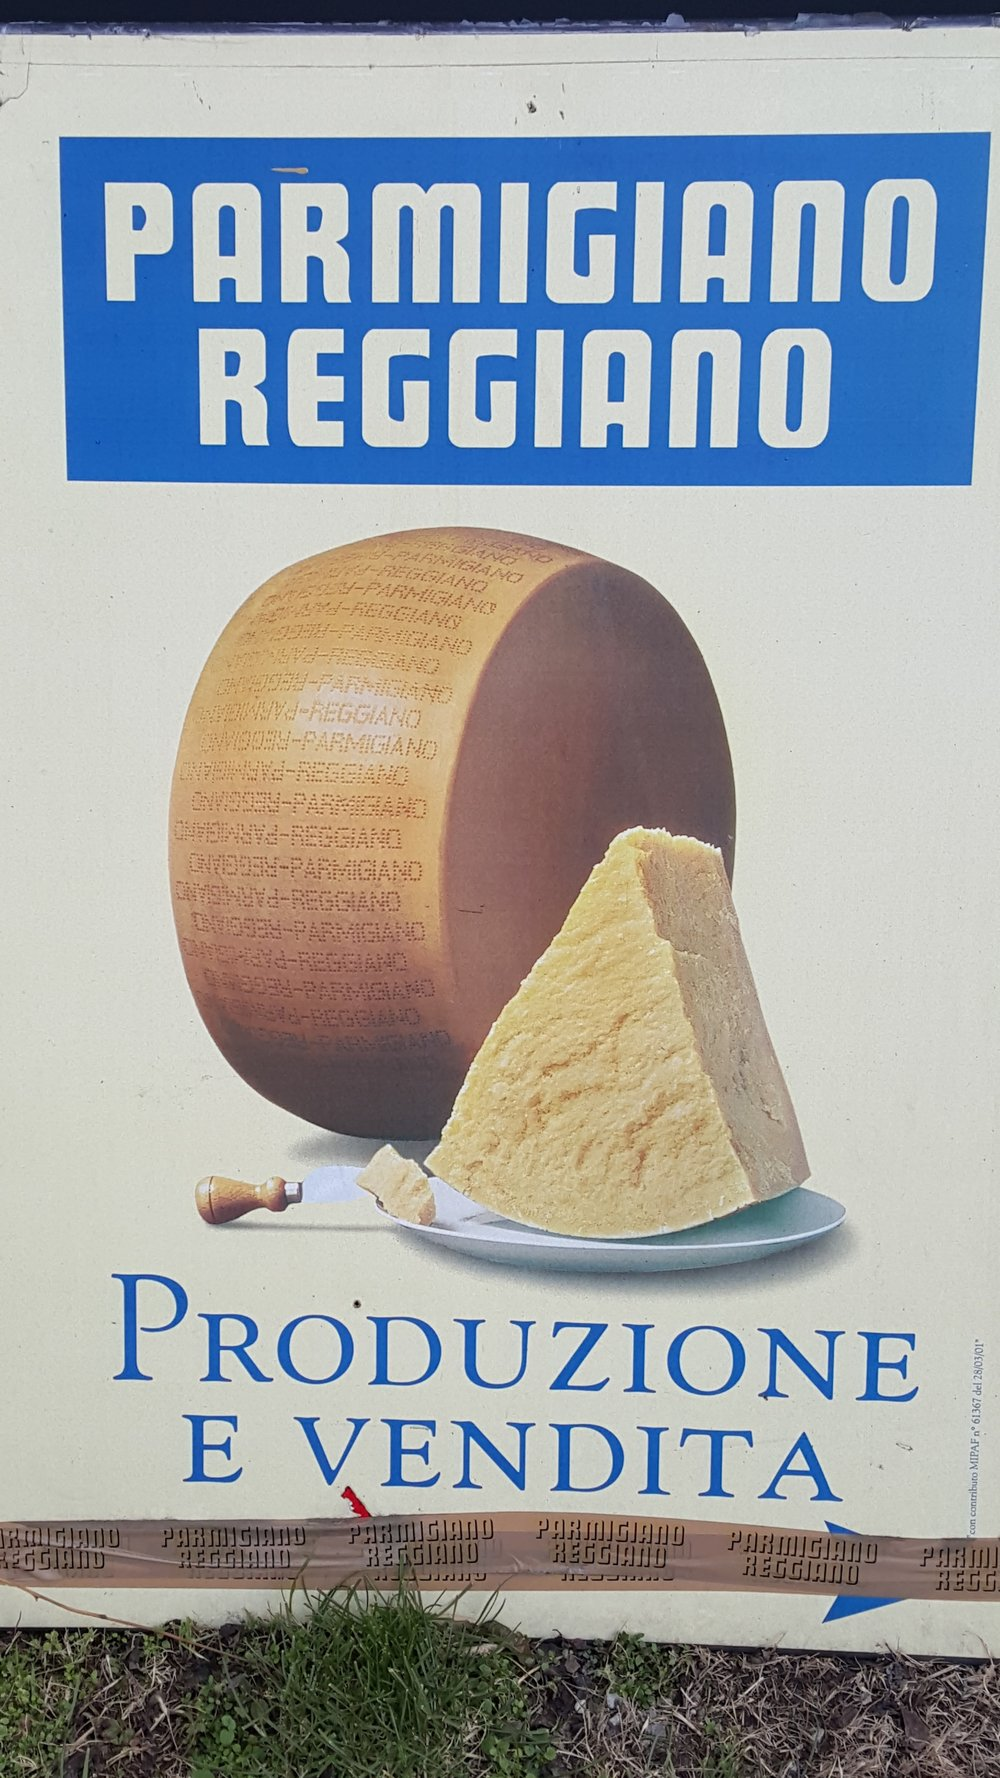 Start of private tour of Parmigiano Reggiano creamery